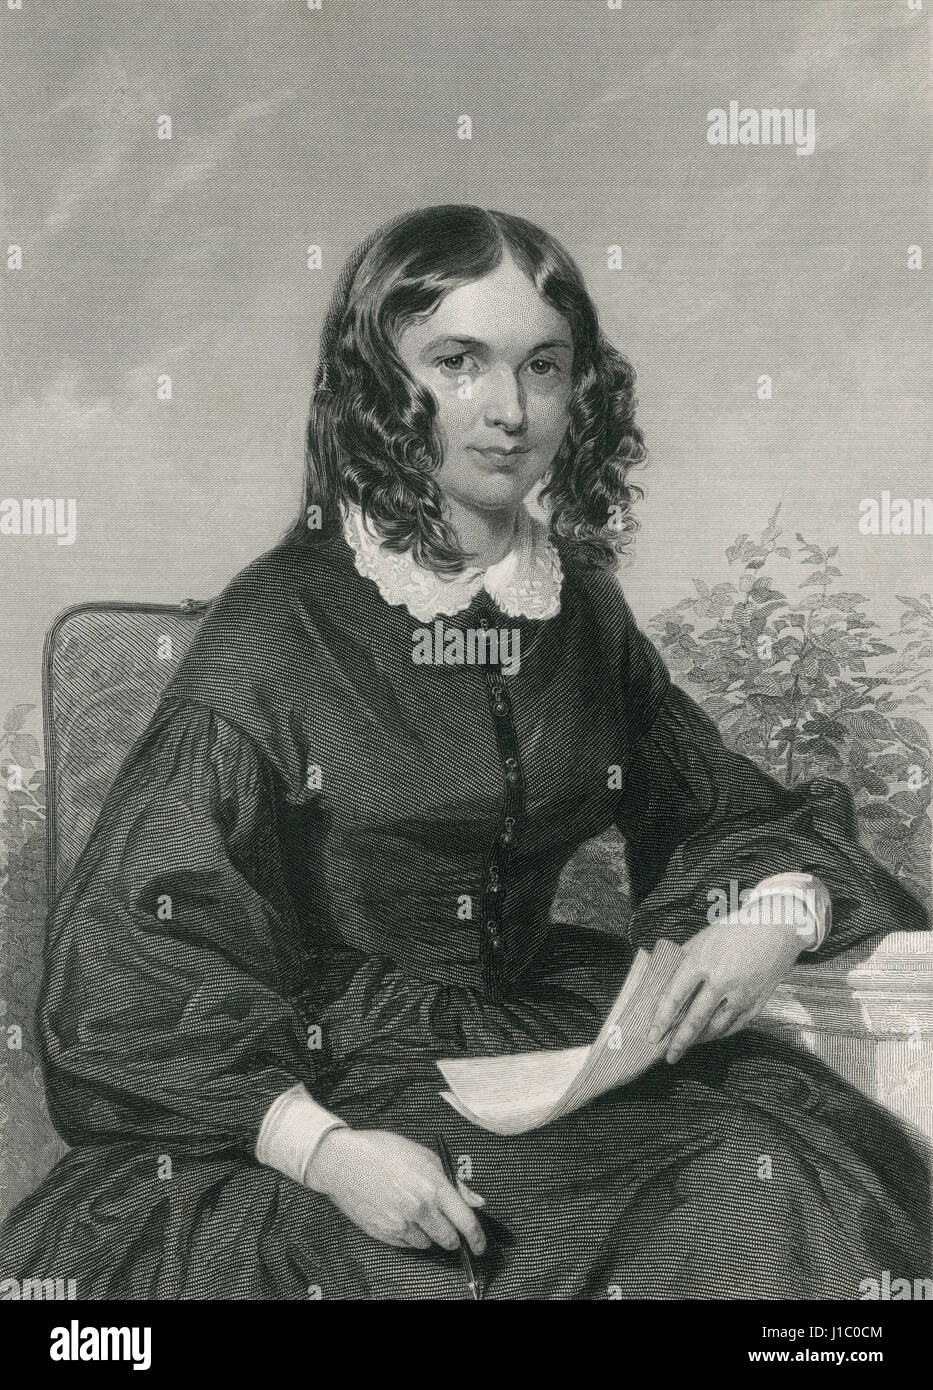 Elizabeth Barrett Browning (1806-61),Prominent English Poet,Portrait,Engraving from original Painting by Chappel,1872 - Stock Image